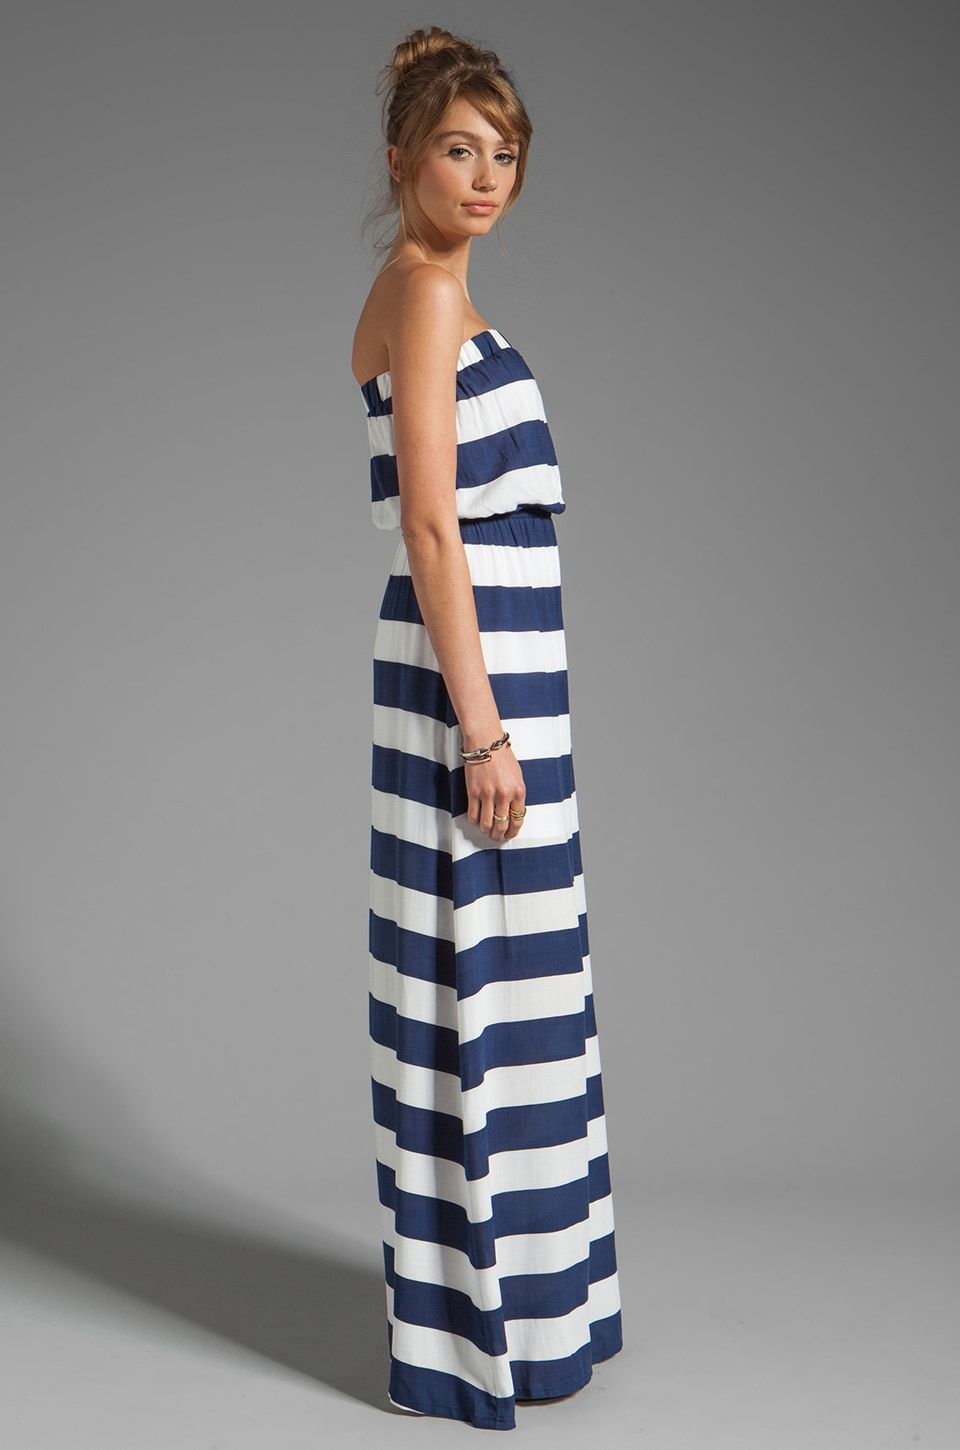 Navy And White Striped Dress Cocktail Dresses 2016